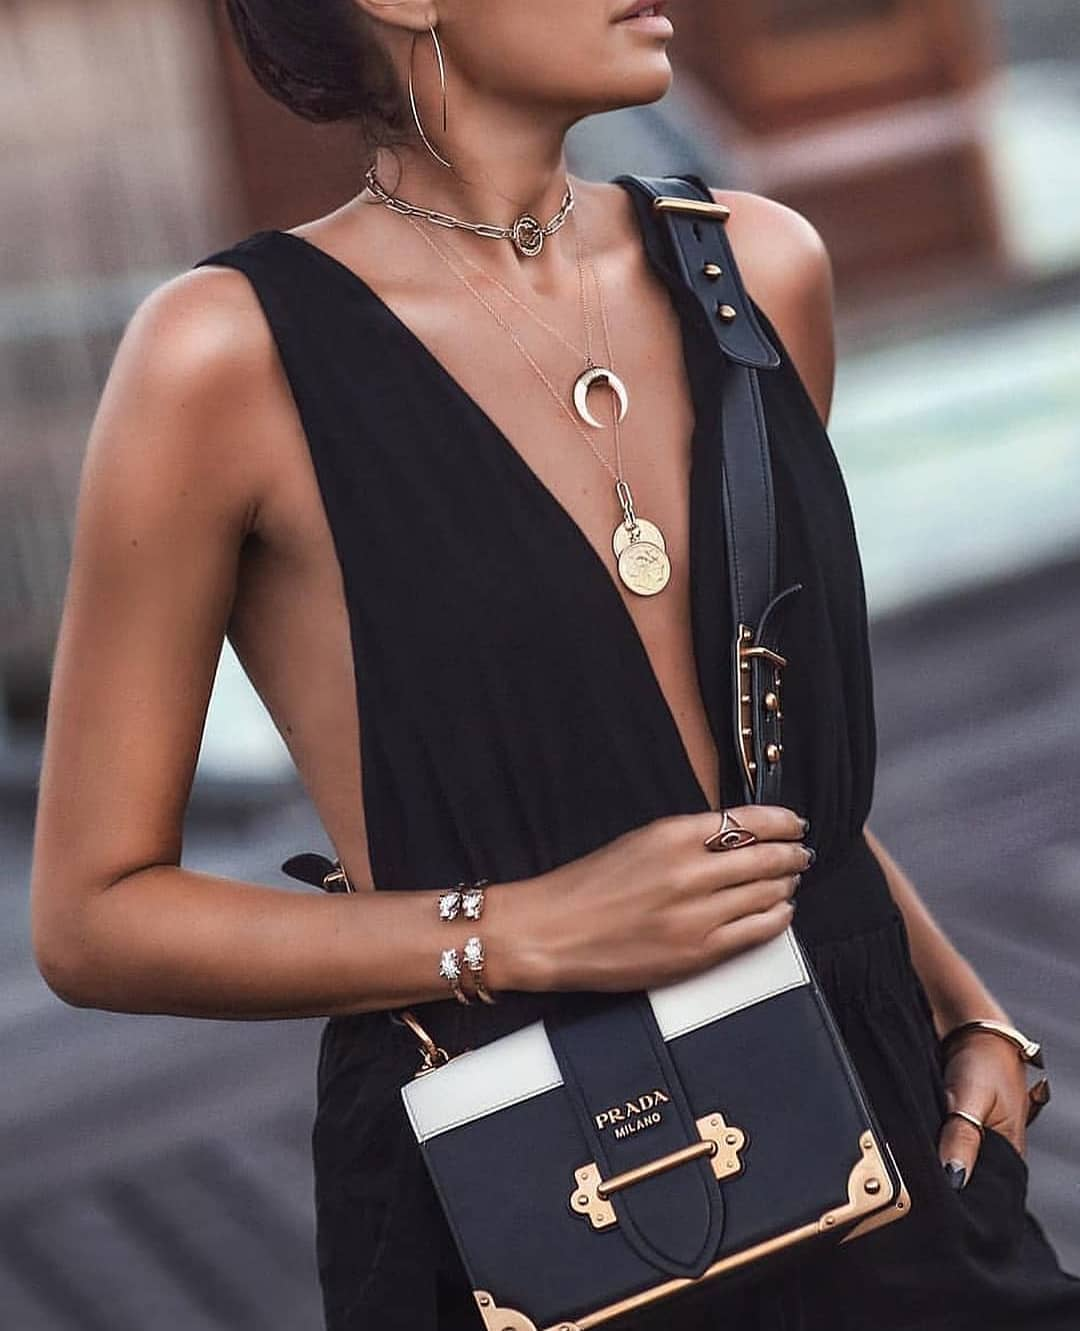 Sleeveless V-neck Romper In Black For Summer Garden Parties 2019